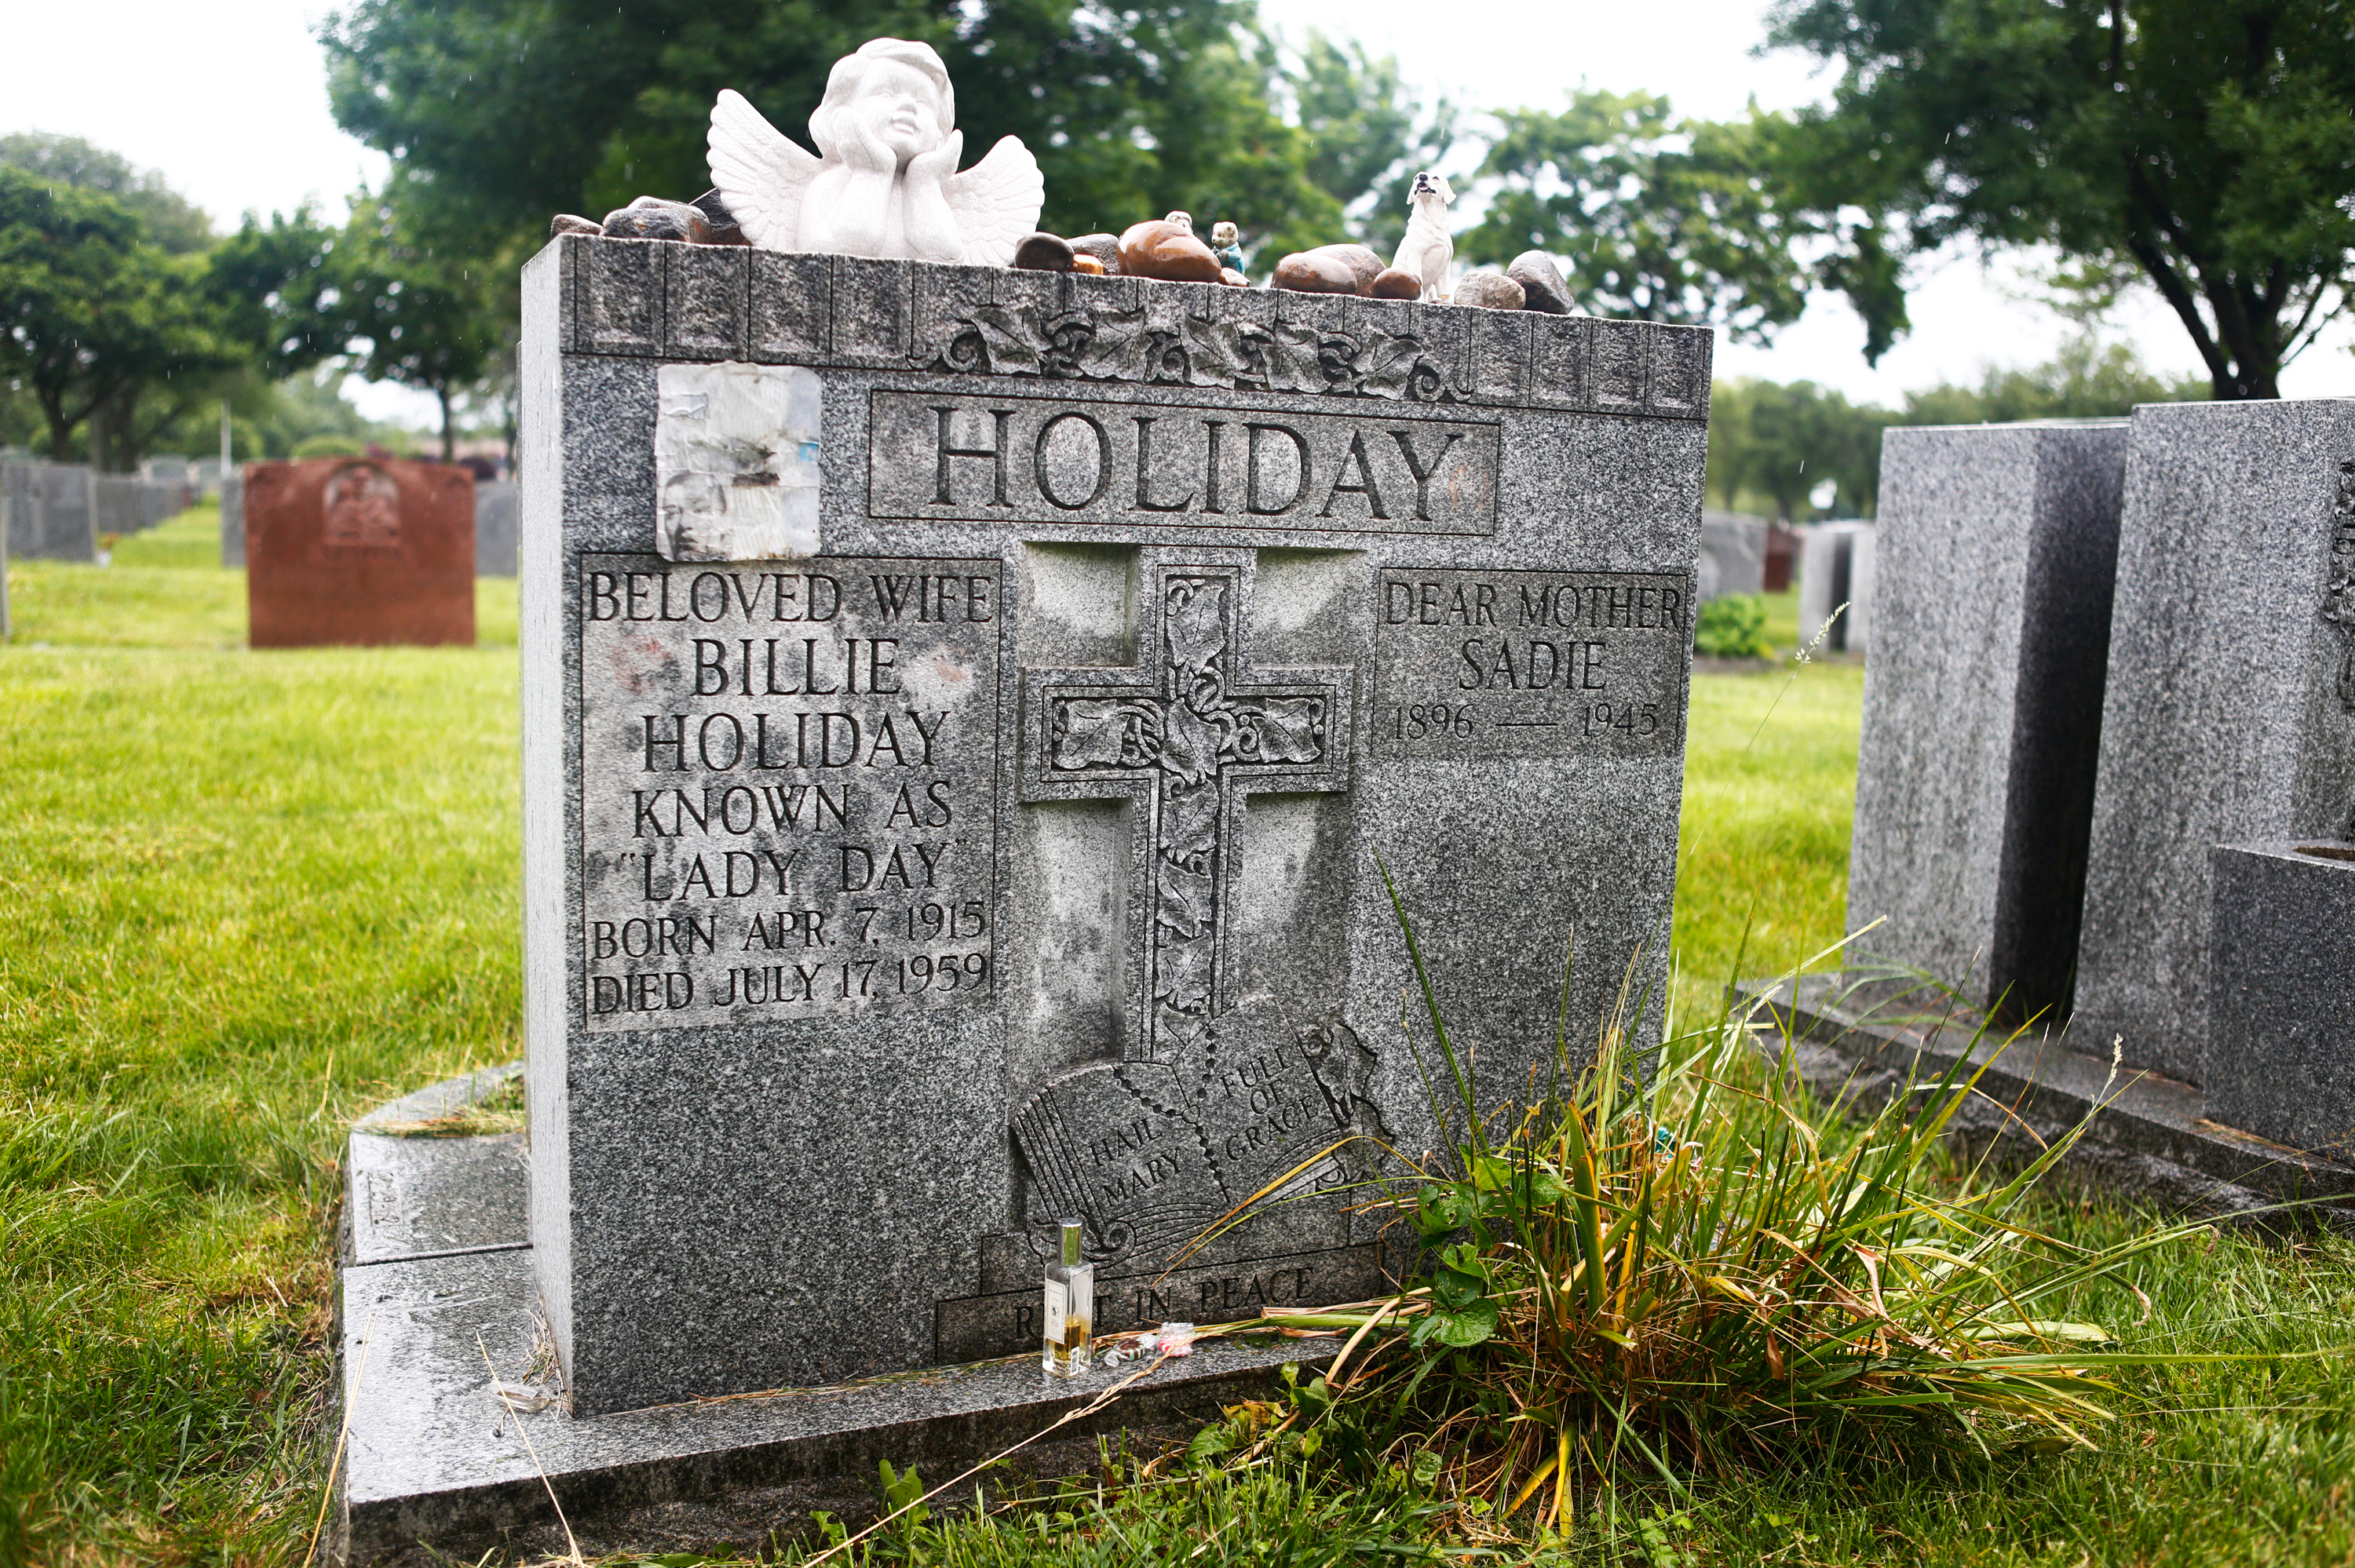 queenesther09_12506337 - Billie Holiday, who died on July 17, 1959, is buried alongside her mother, Sadie Fagan, in St. Raymond's Cemetery in the Bronx.